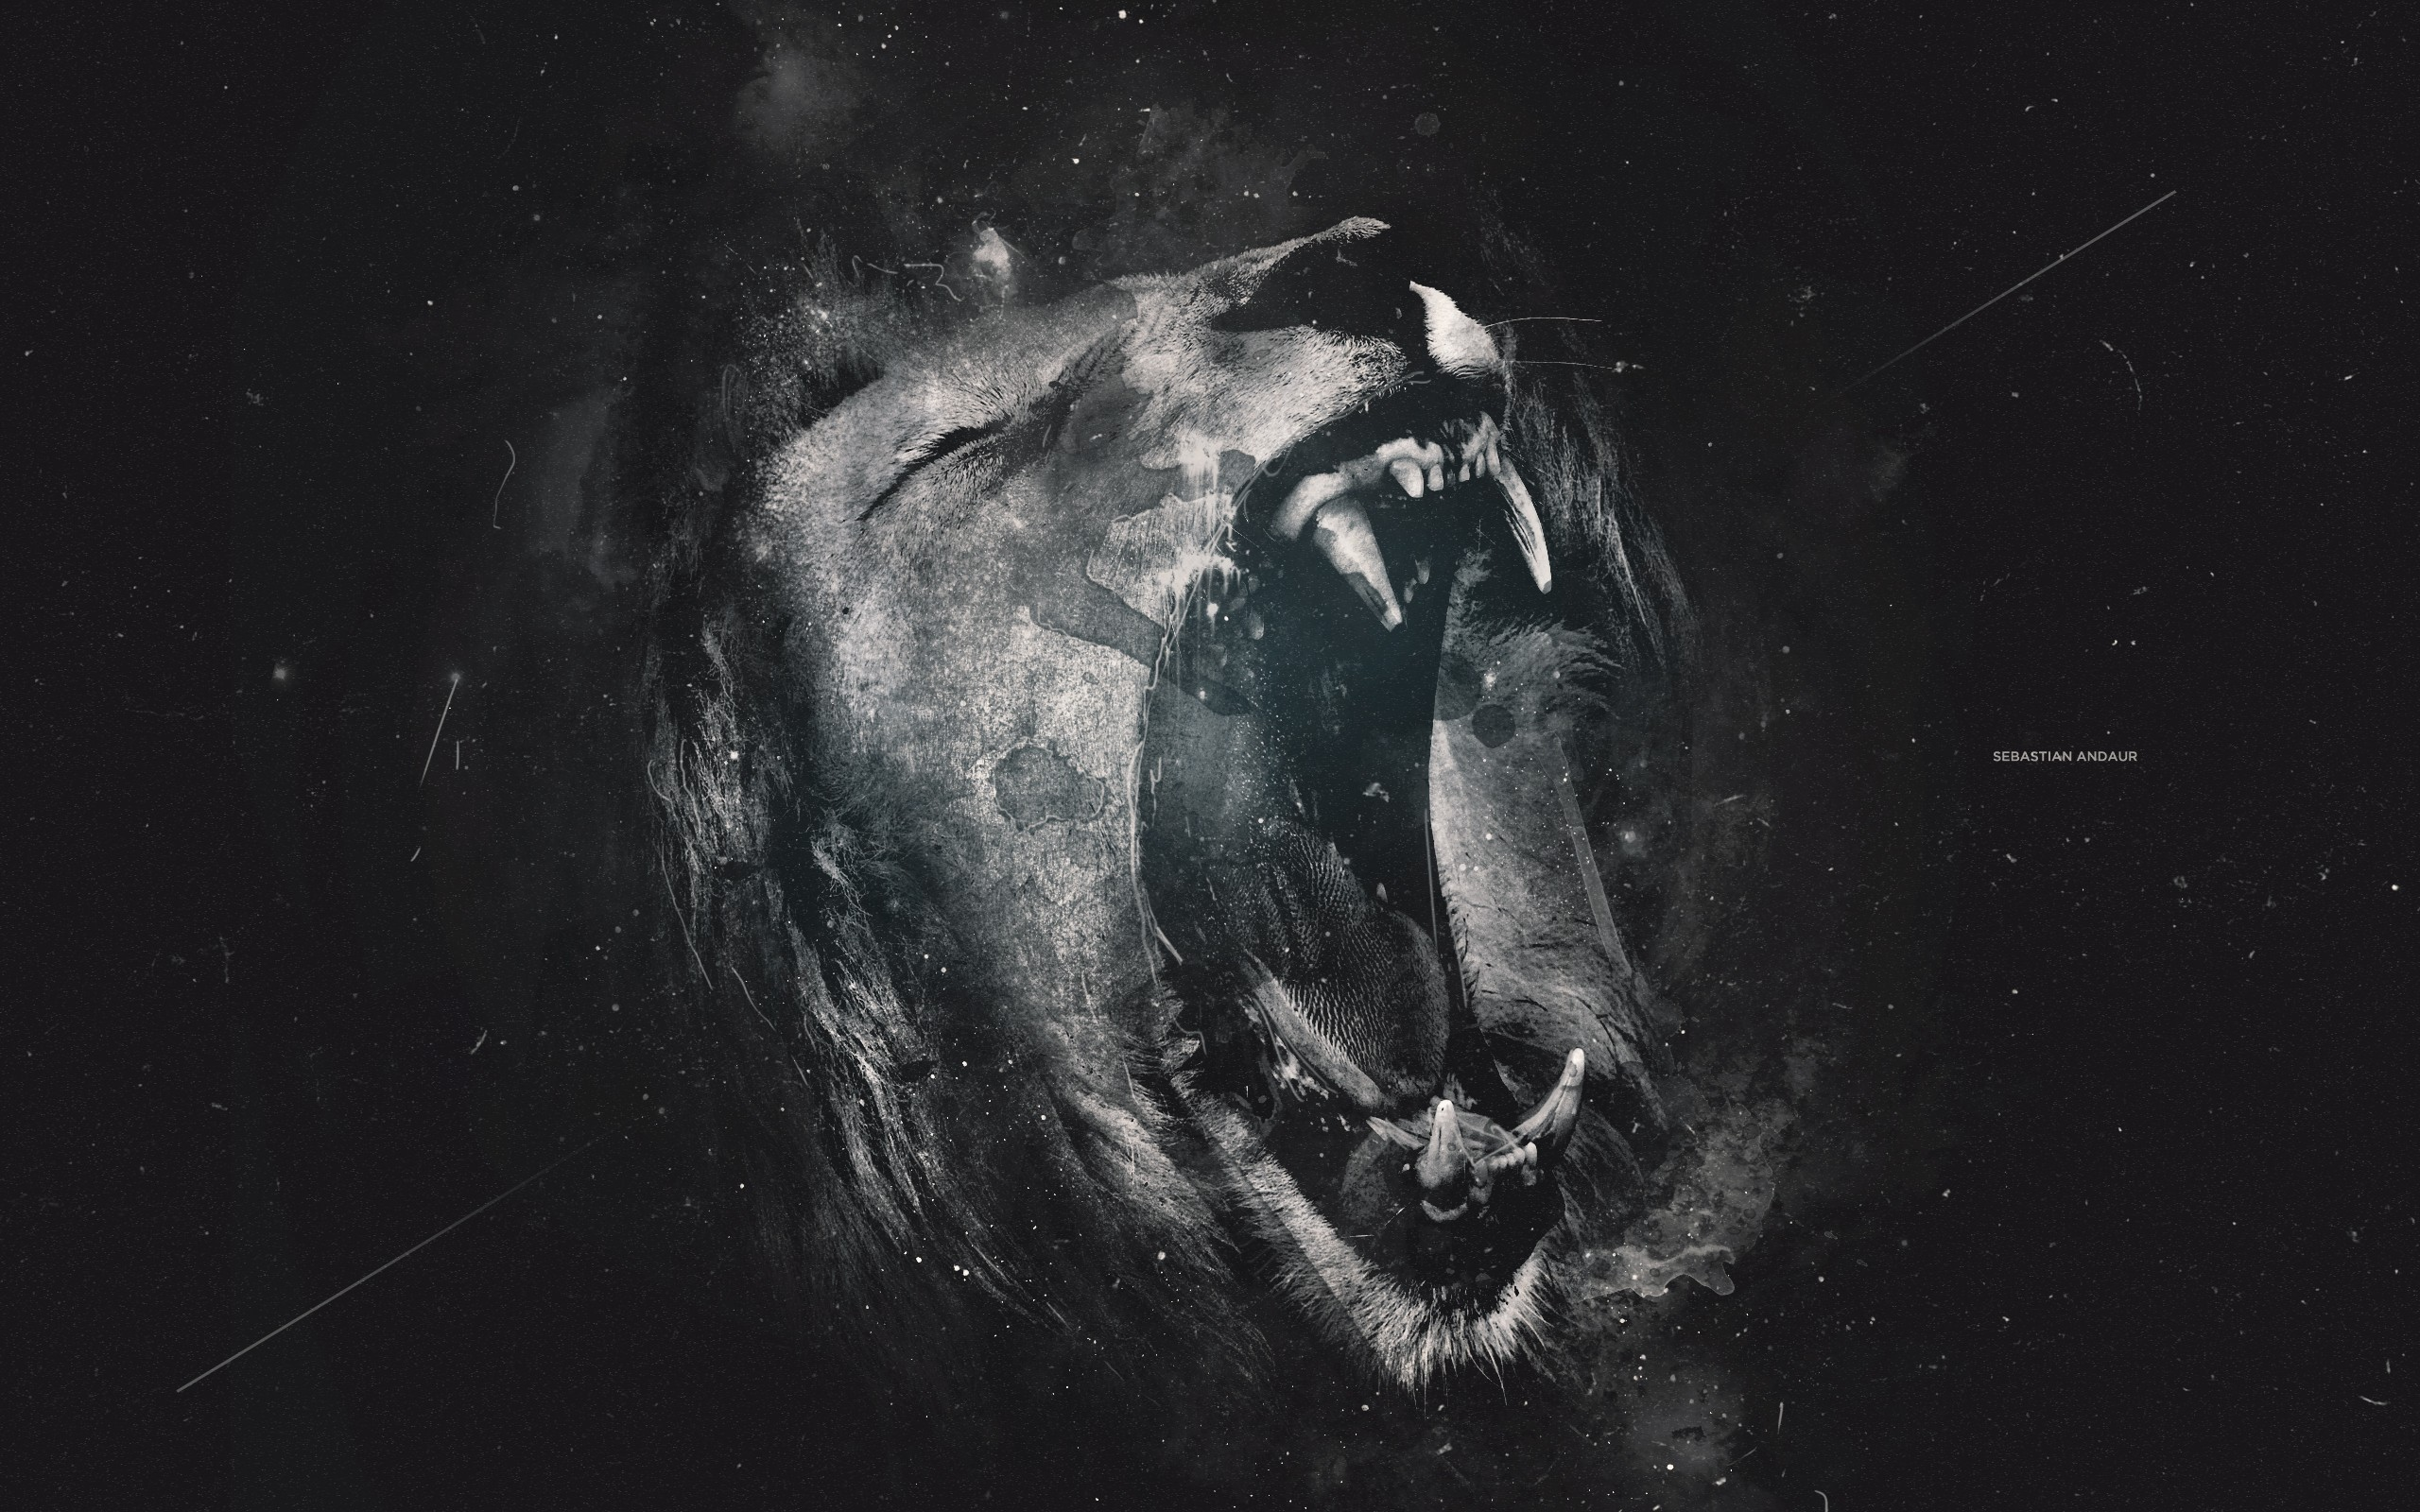 Lion grayscale art